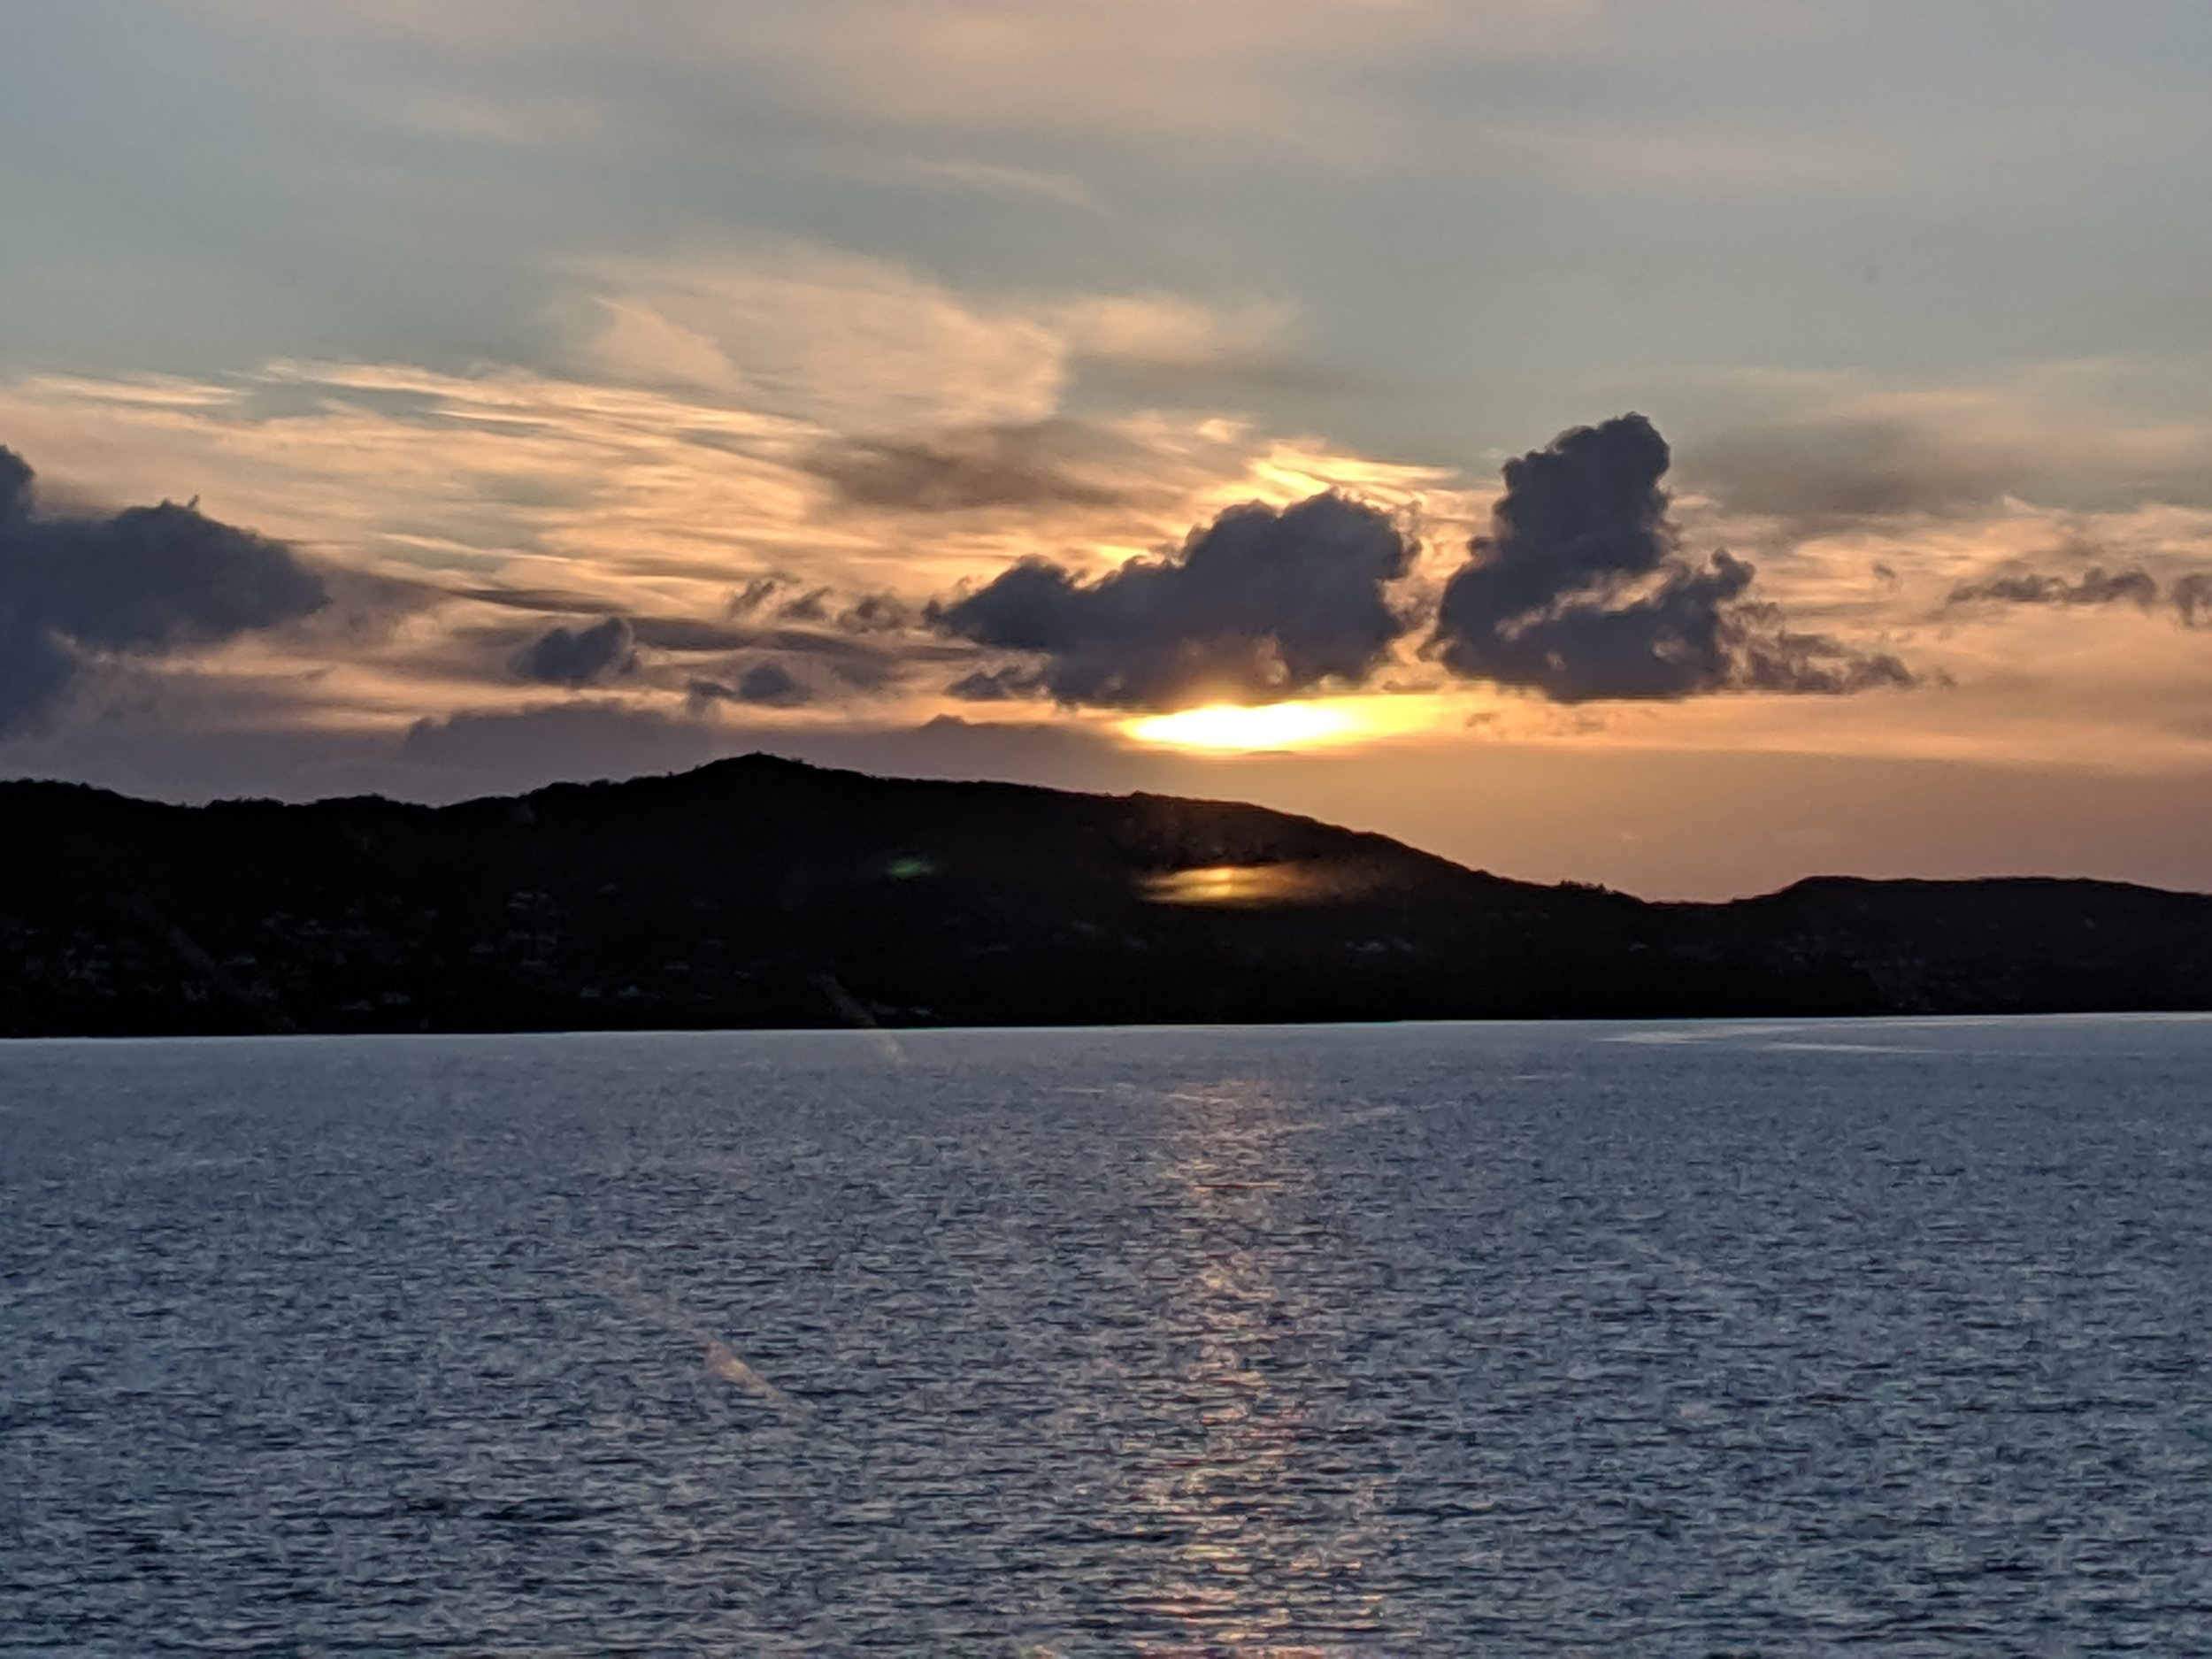 Sunset from the ferry as we left Bergen on our up the coast way to Alesund.